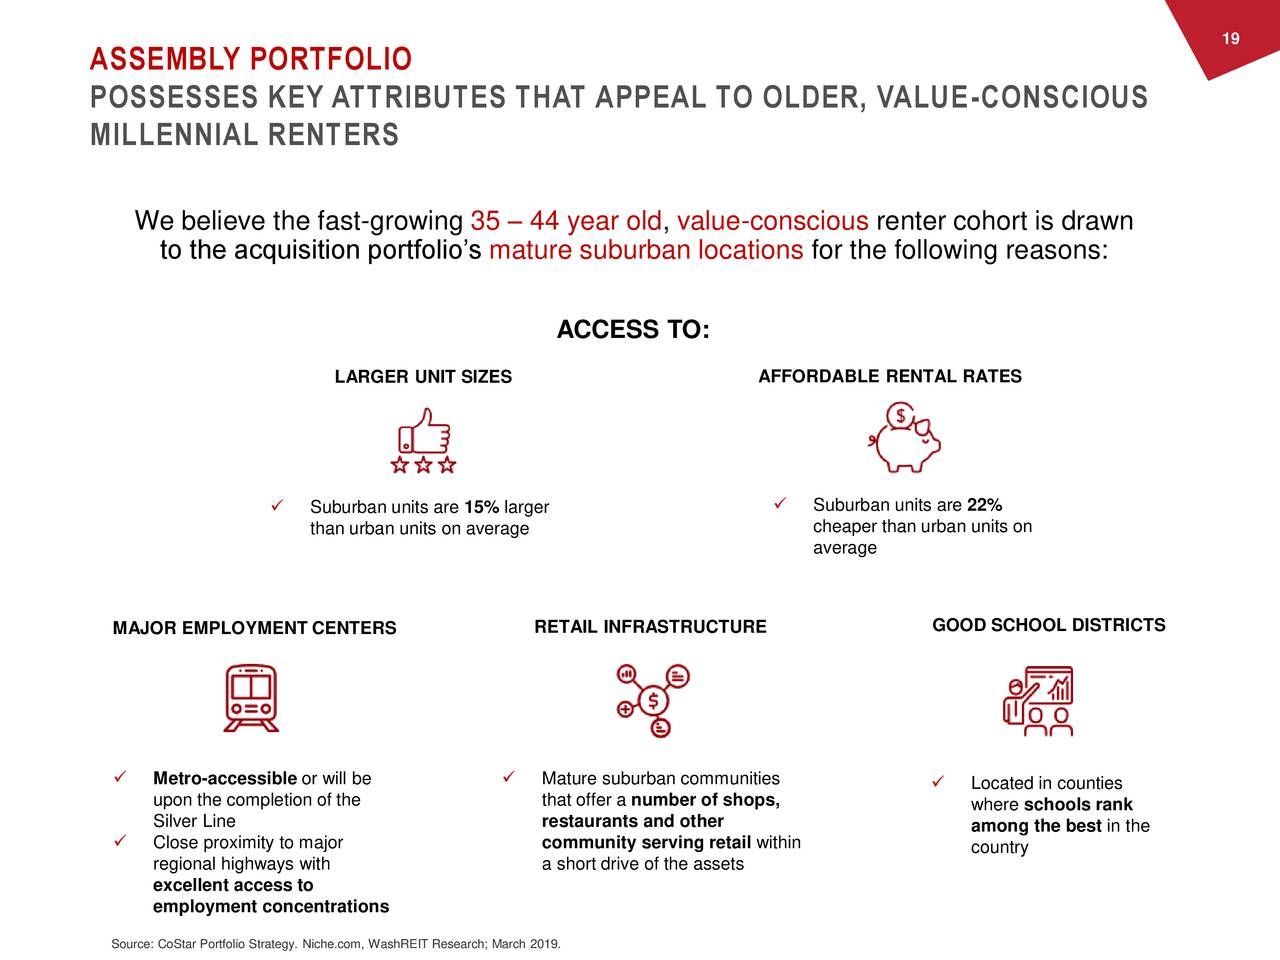 ASSEMBLY PORTFOLIO POSSESSES KEY ATTRIBUTES THAT APPEAL TO OLDER, VALUE-CONSCIOUS MILLENNIAL RENTERS We believe the fast-growing 35 – 44 year old, value-conscious renter cohort is drawn to the acquisition portfolio's mature suburban locations for the following reasons: ACCESS TO: AFFORDABLE RENTAL RATES LARGER UNIT SIZES  Suburban units are 15% larger  Suburban units are 22% than urban units on average cheaper than urban units on average GOOD SCHOOL DISTRICTS MAJOR EMPLOYMENT CENTERS RETAIL INFRASTRUCTURE  Metro-accessible or will be  Mature suburban communities  Located in counties upon the completion of the that offer a number of shops, where schools rank Silver Line restaurants and other among the best in the  Close proximity to major community serving retail within country regional highways with a short drive of the assets excellent access to employment concentrations Source: CoStar Portfolio Strategy. Niche.com, WashREIT Research; March 2019.